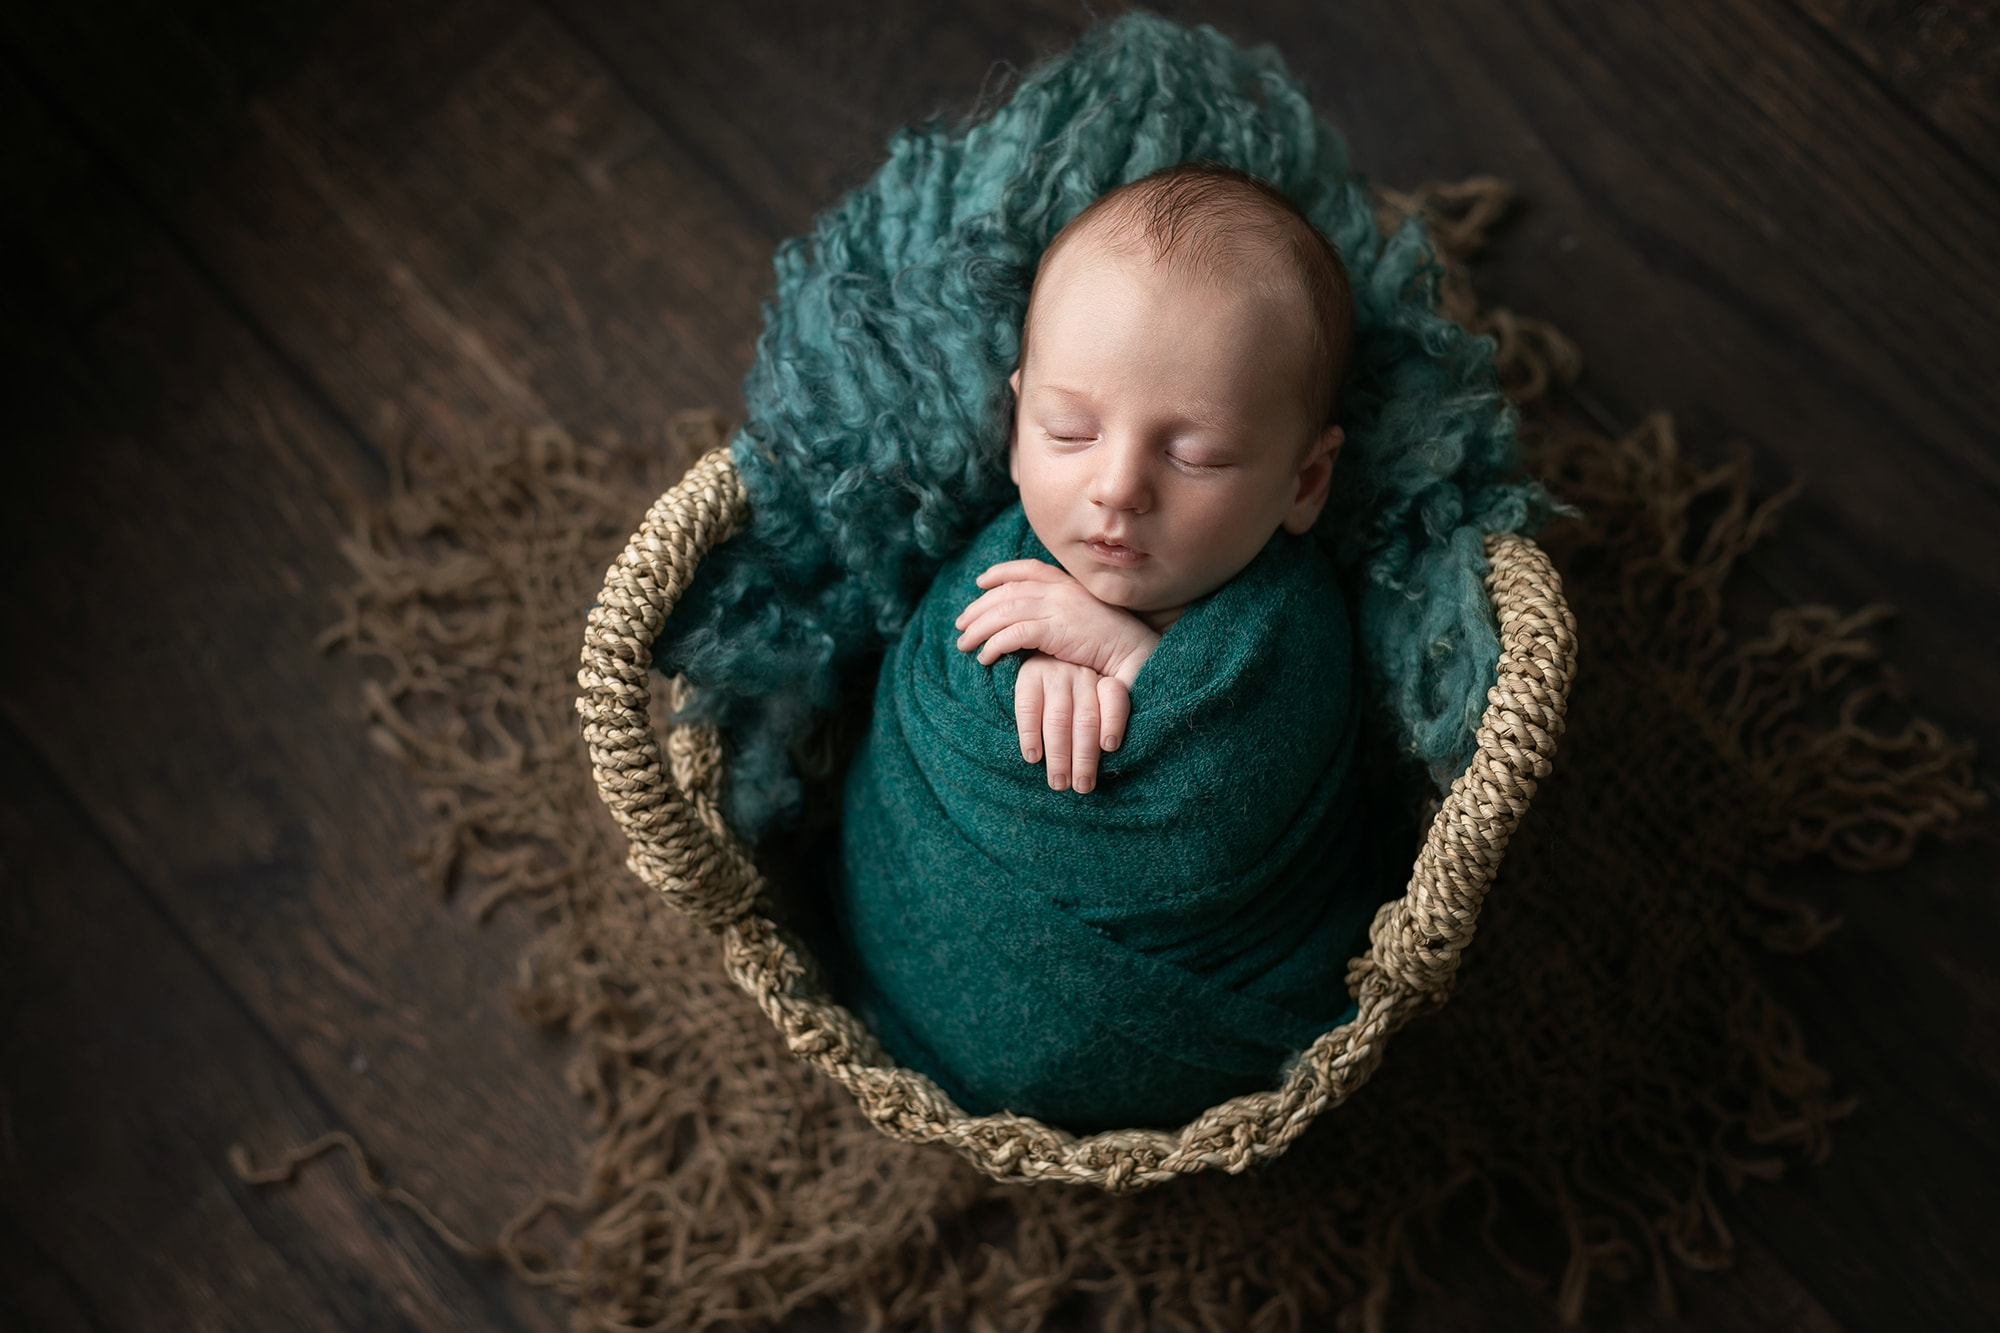 Baby boy wrapped in jade green in a basket on green fur, sat on dark wooden floor. Picture taken by Glasgow photographer